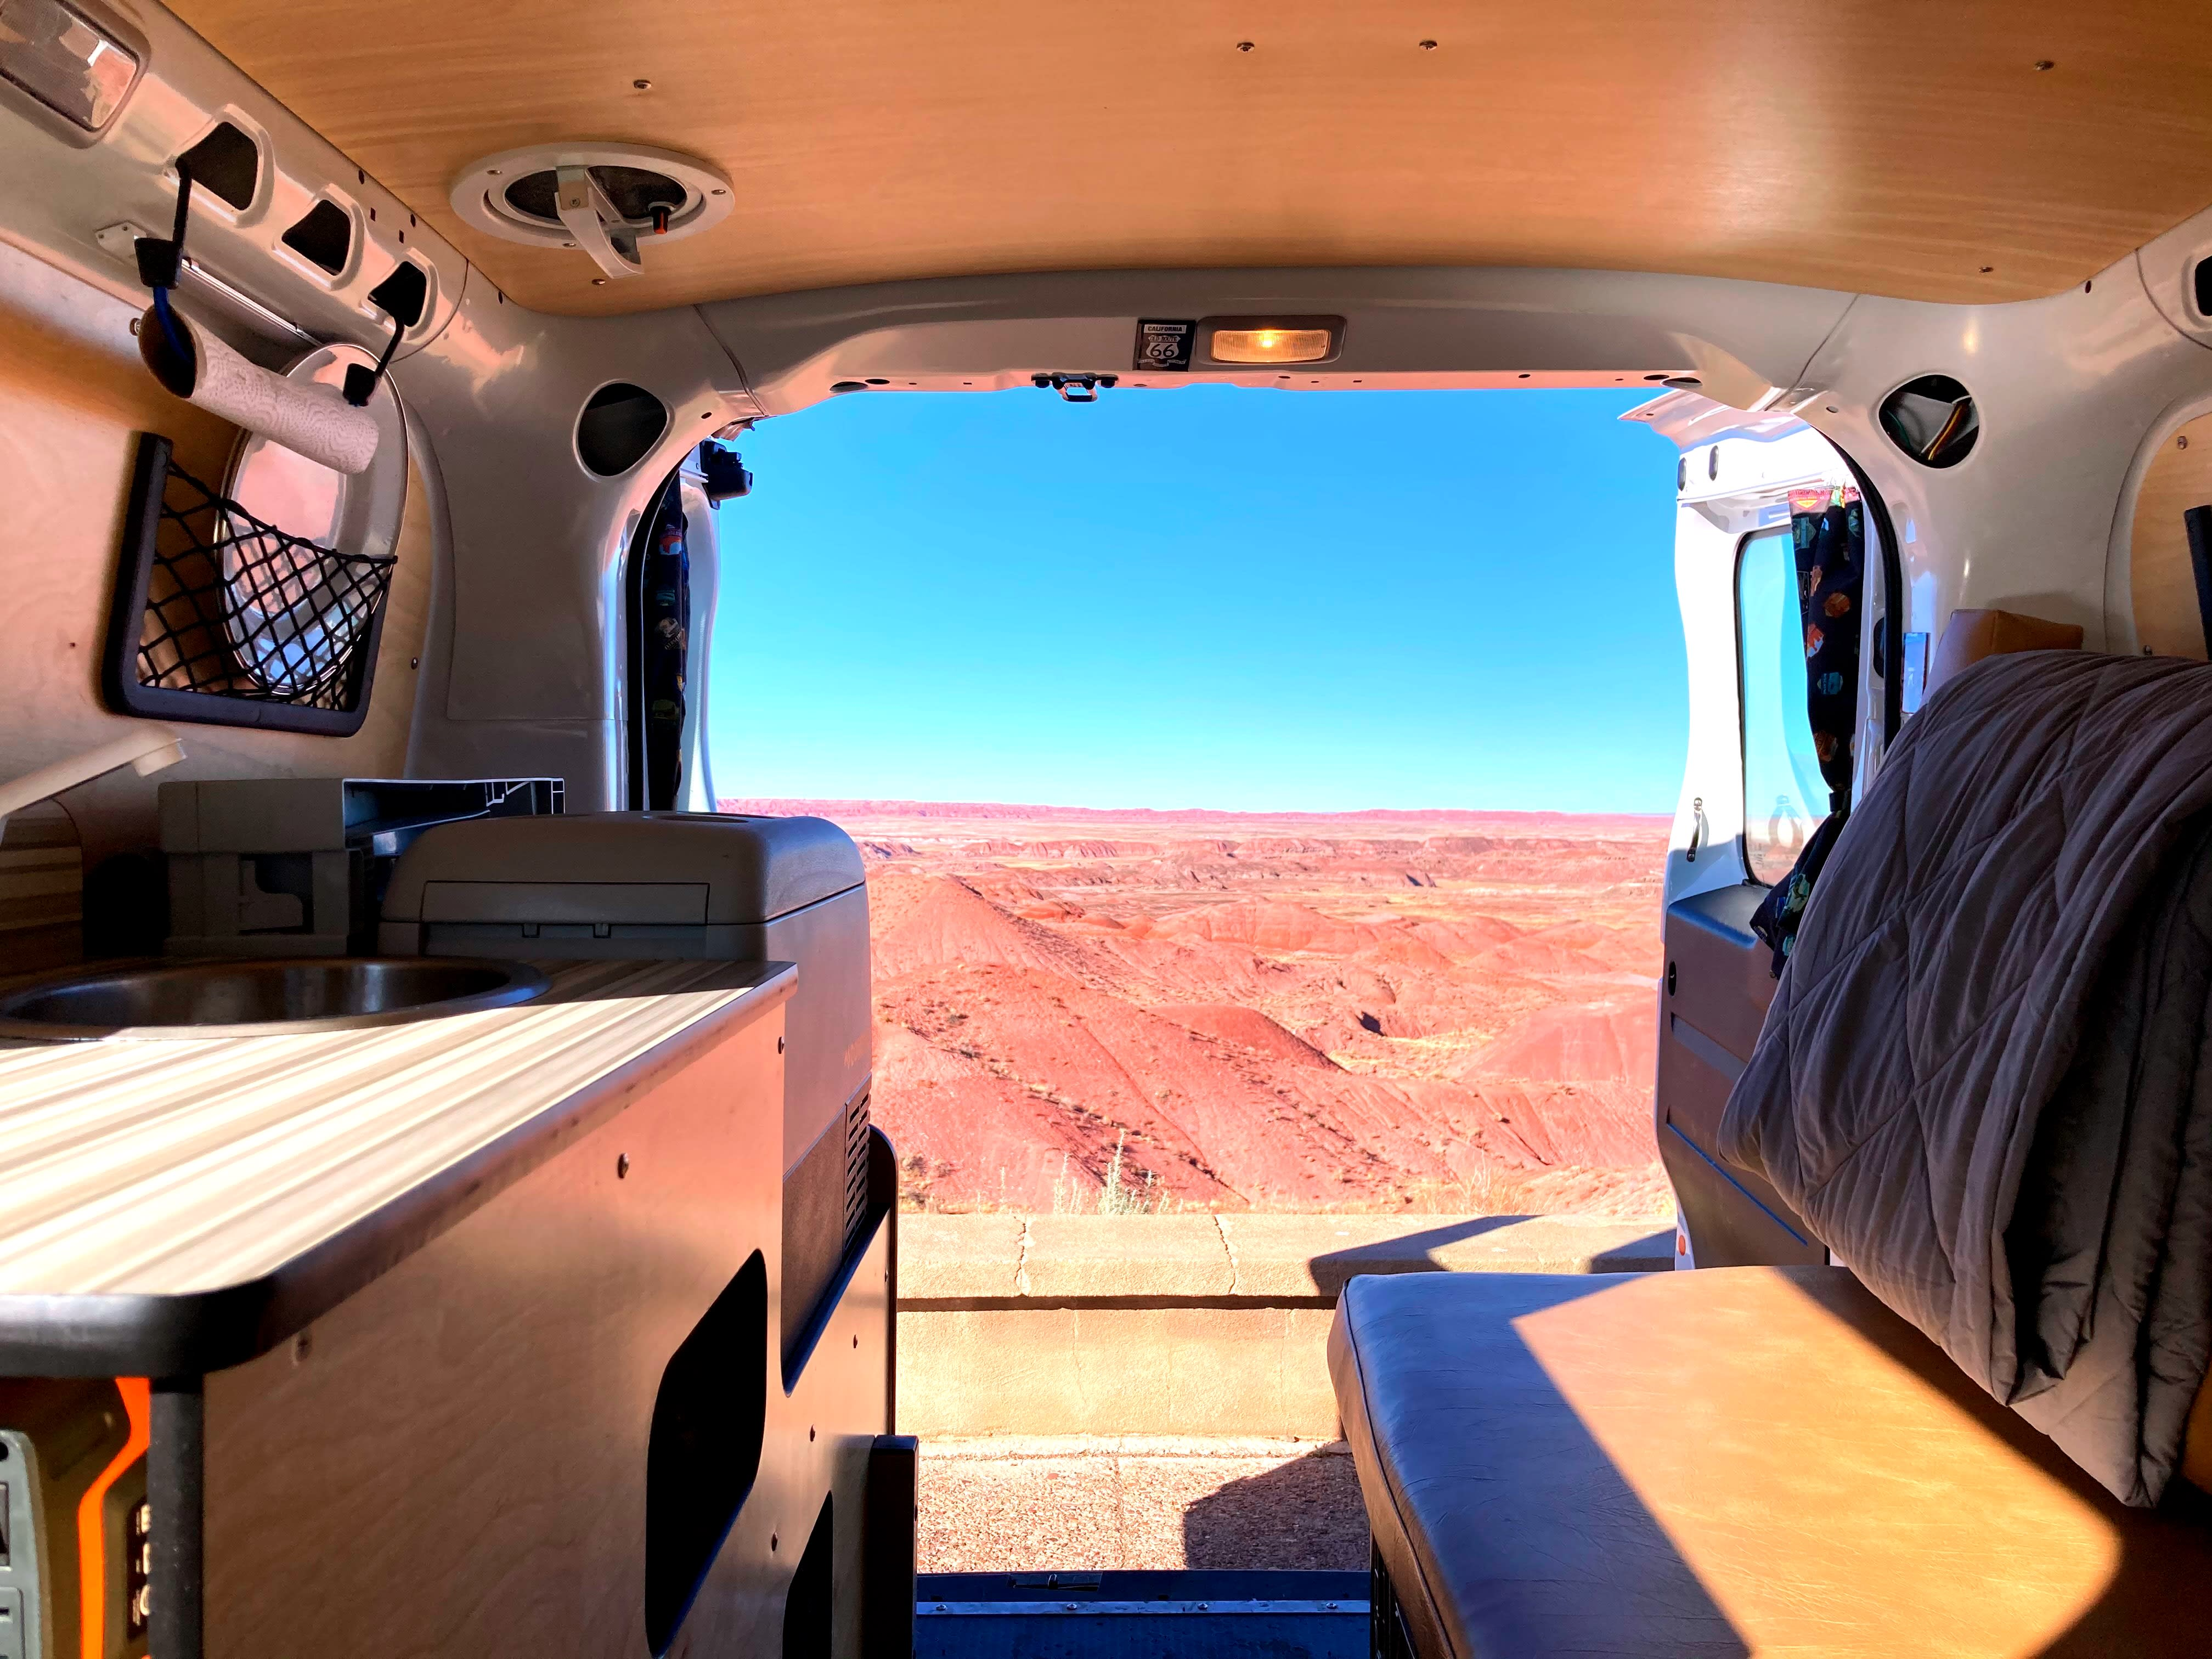 At the Painted Desert NP in Arizona...   Kitchen unit and padded bench seating bring the outdoors inside.. RAM ProMaster City 2020